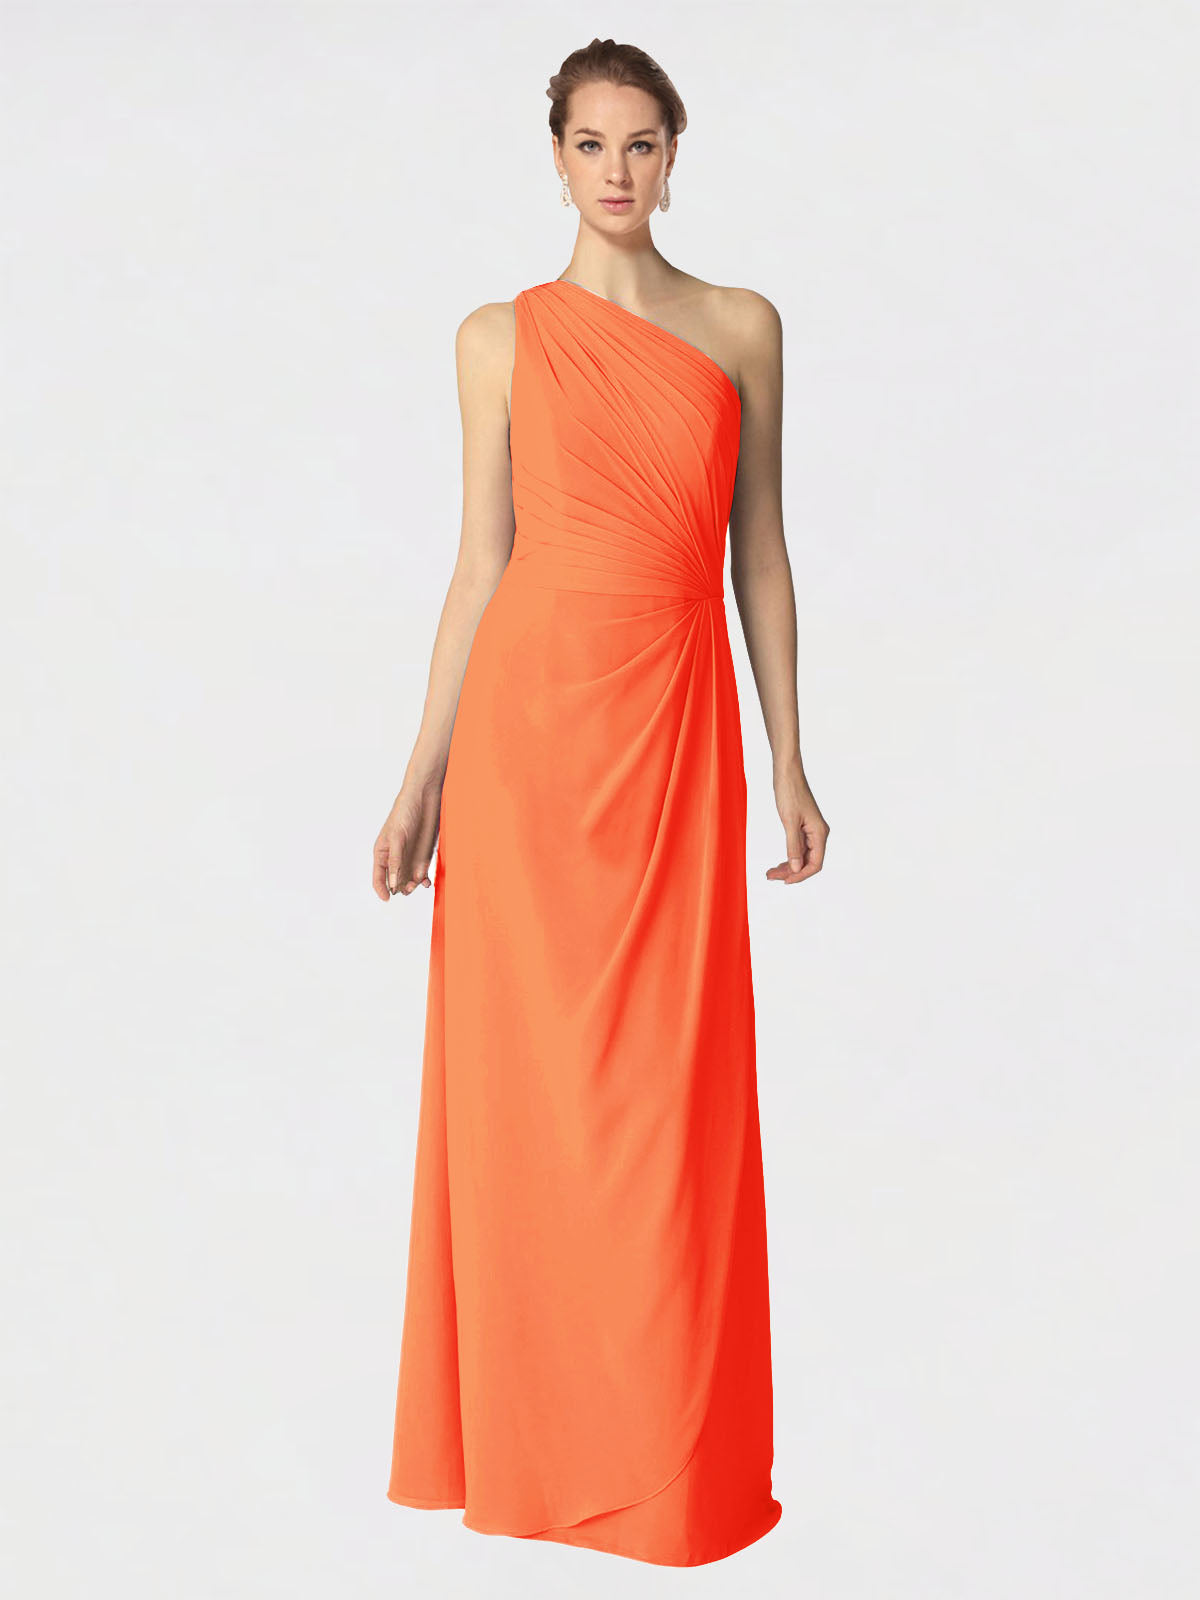 Long A-Line One Shoulder Sleeveless Tangerine Tango Chiffon Bridesmaid Dress Aurora